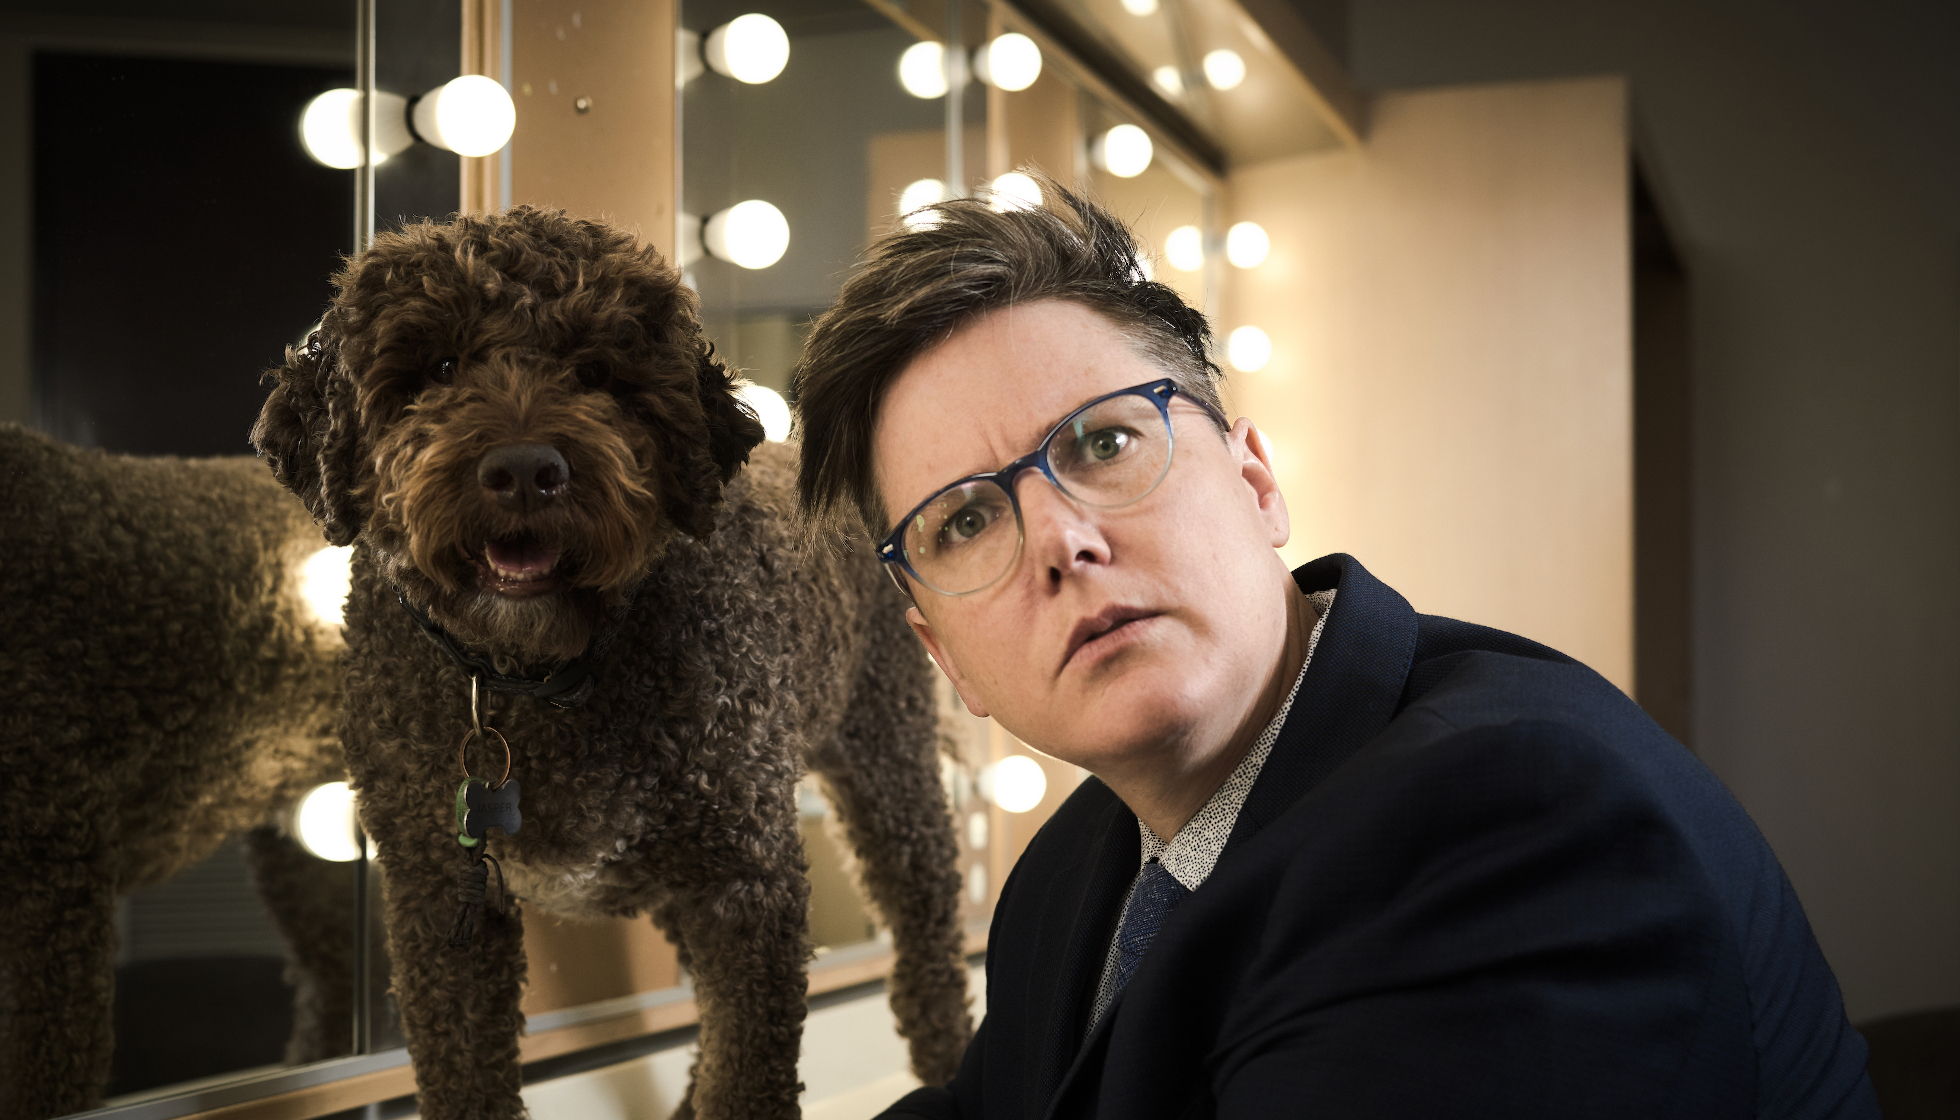 That's DR Hannah Gadsby To You